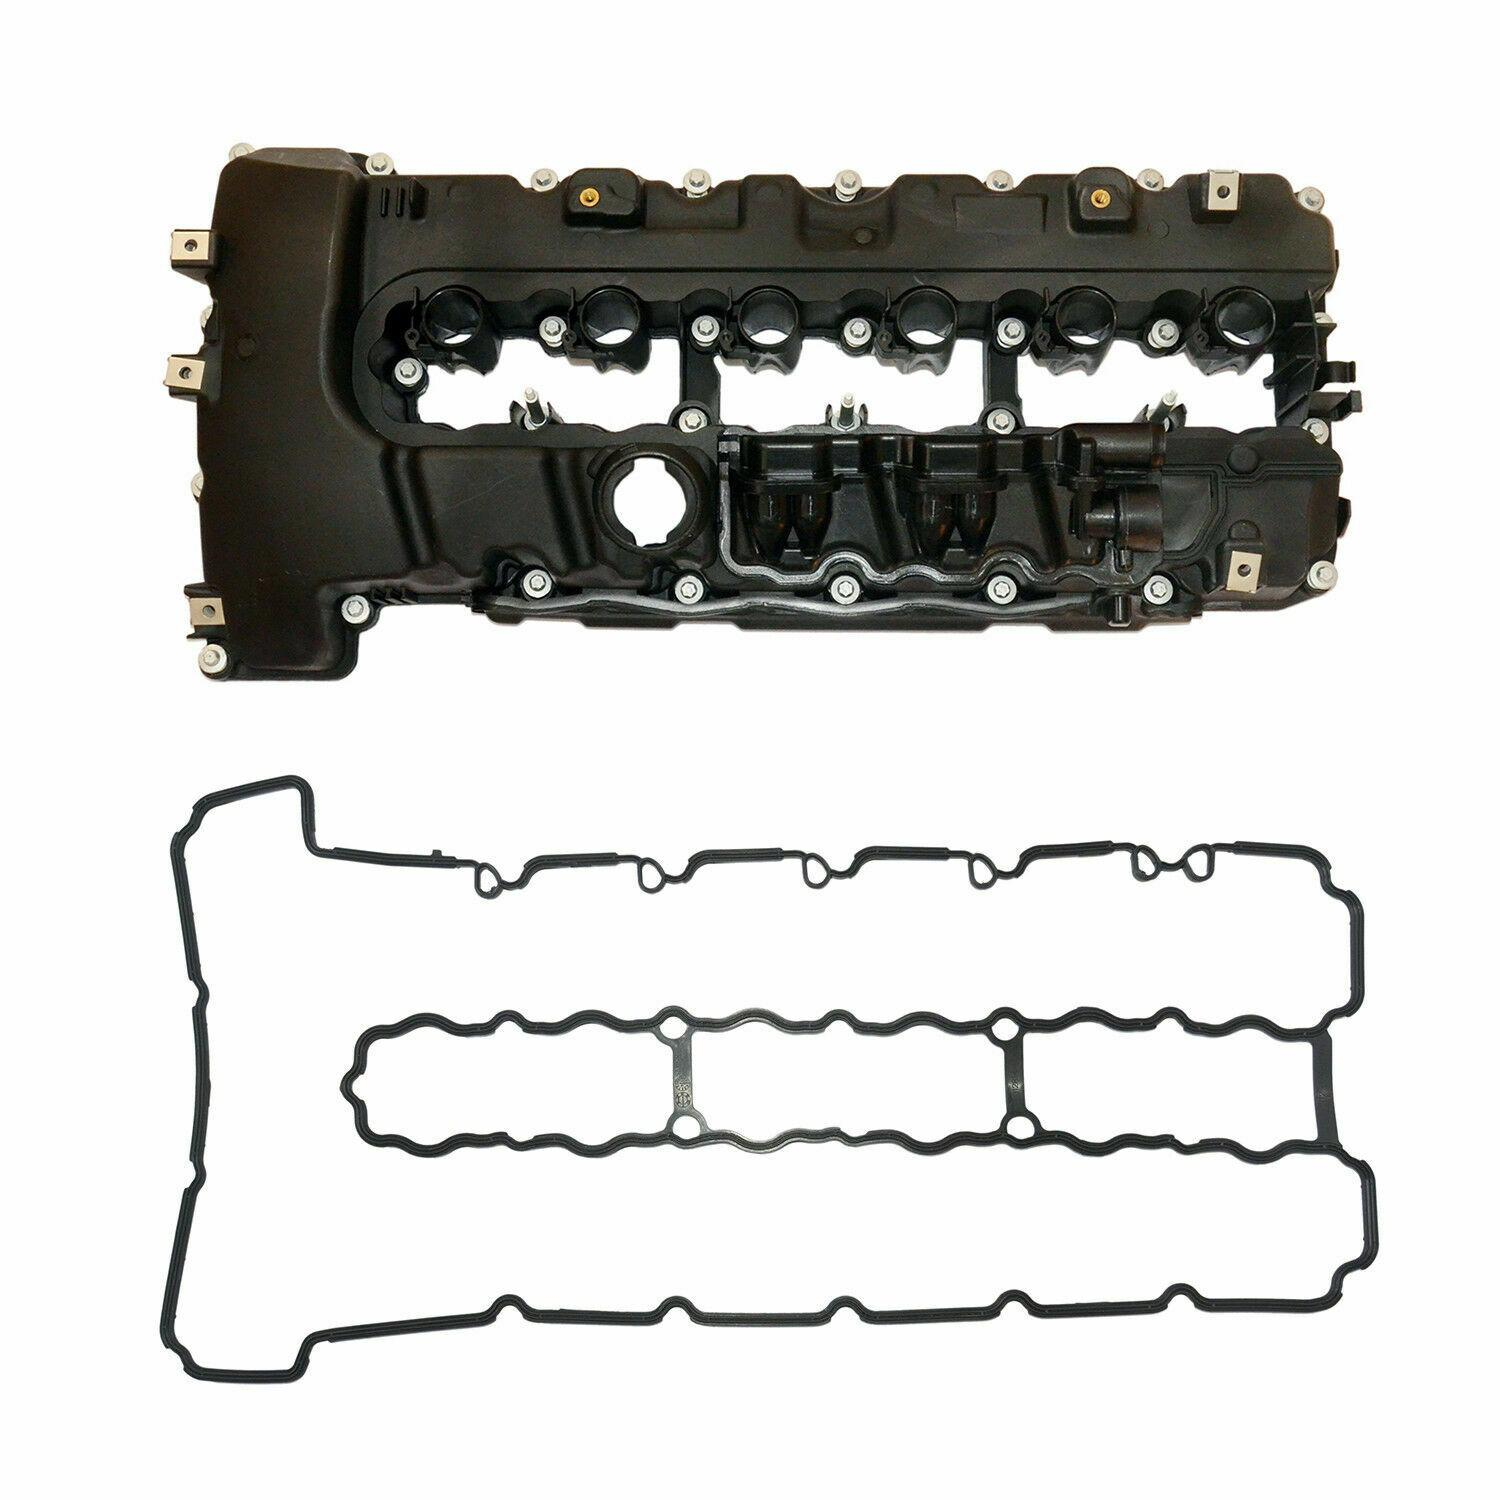 AP03 For <font><b>BMW</b></font> N54 F02/E70 135i 335i 535i 740i <font><b>Engine</b></font> Cylinder Valve <font><b>Cover</b></font> w/Gasket Set 11127565284 image